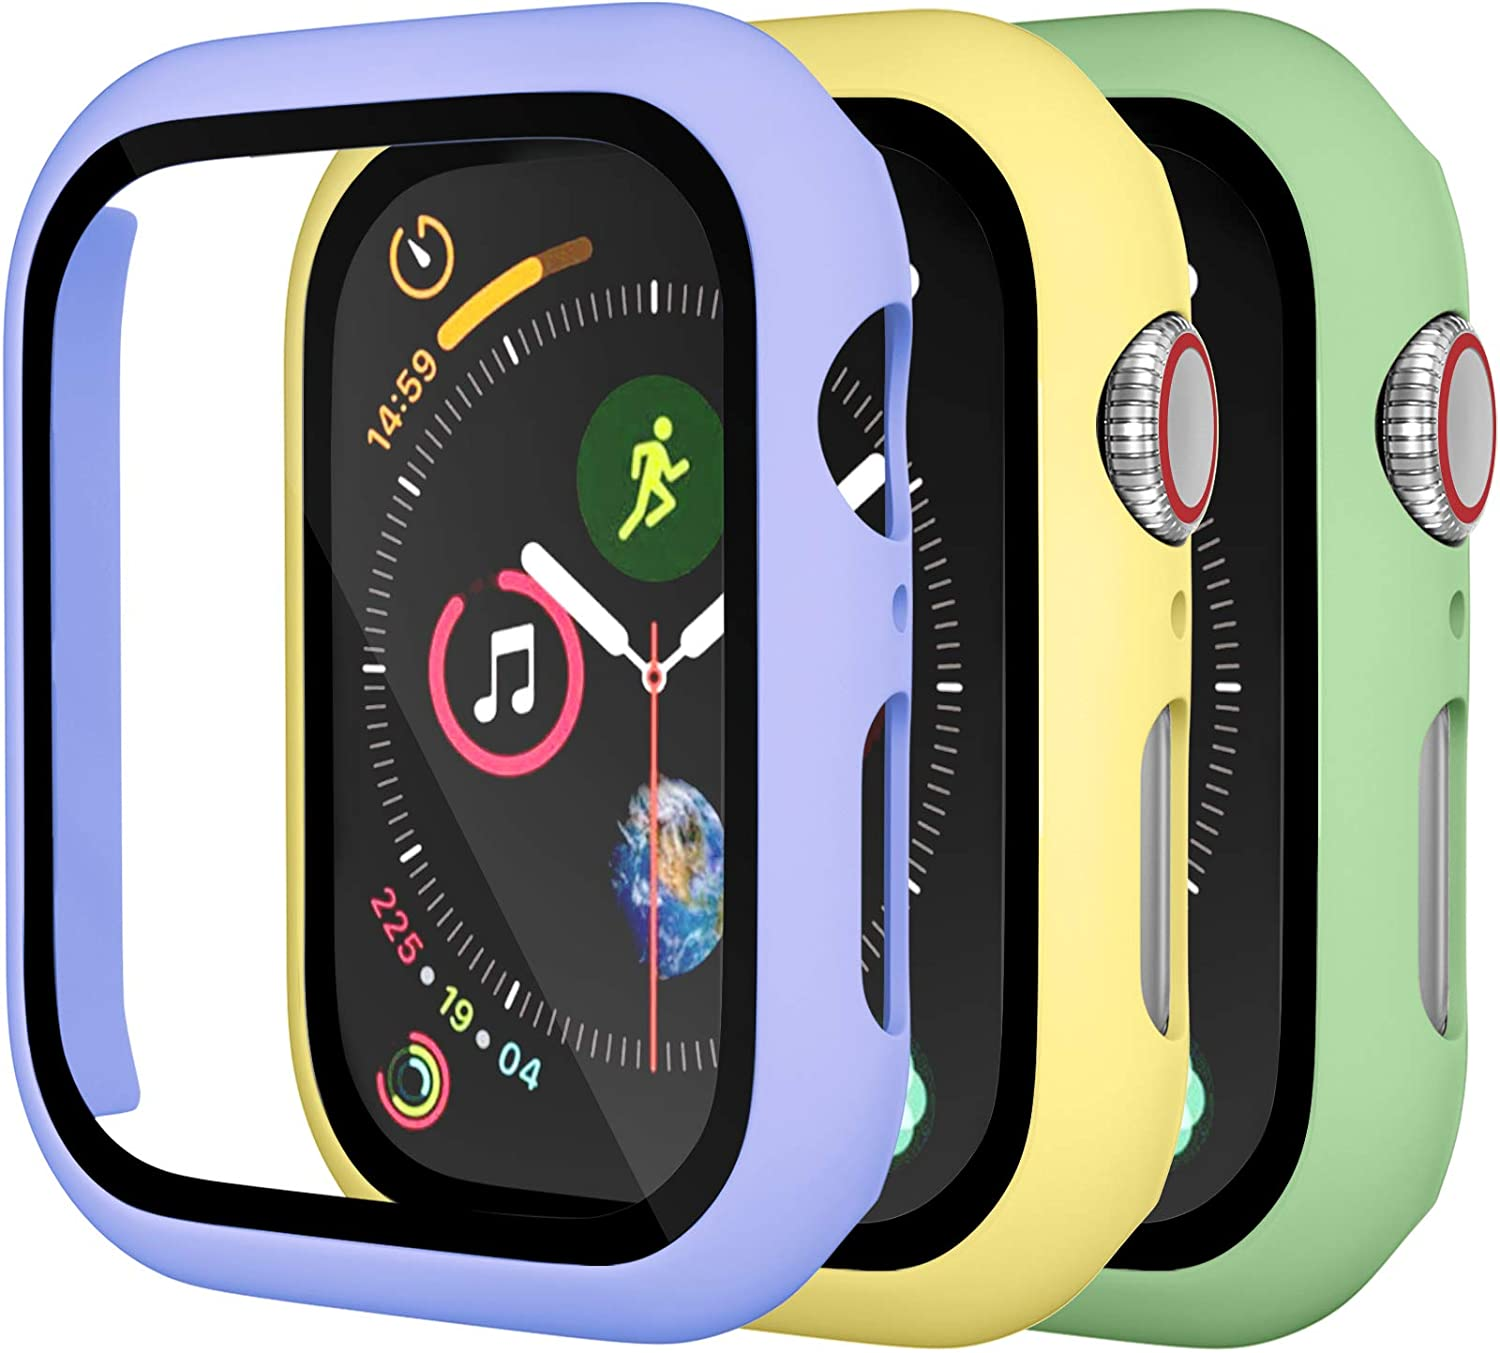 [3 Pack] Charlam Hard PC Case Compatible with Apple Watch 40mm SE iWatch Series 6 5 4 Built-in Screen Protector Slim Guard Bumper Overall Shock-proof Protective Case Cover, Lilac, Yellow, Green,3 Pack